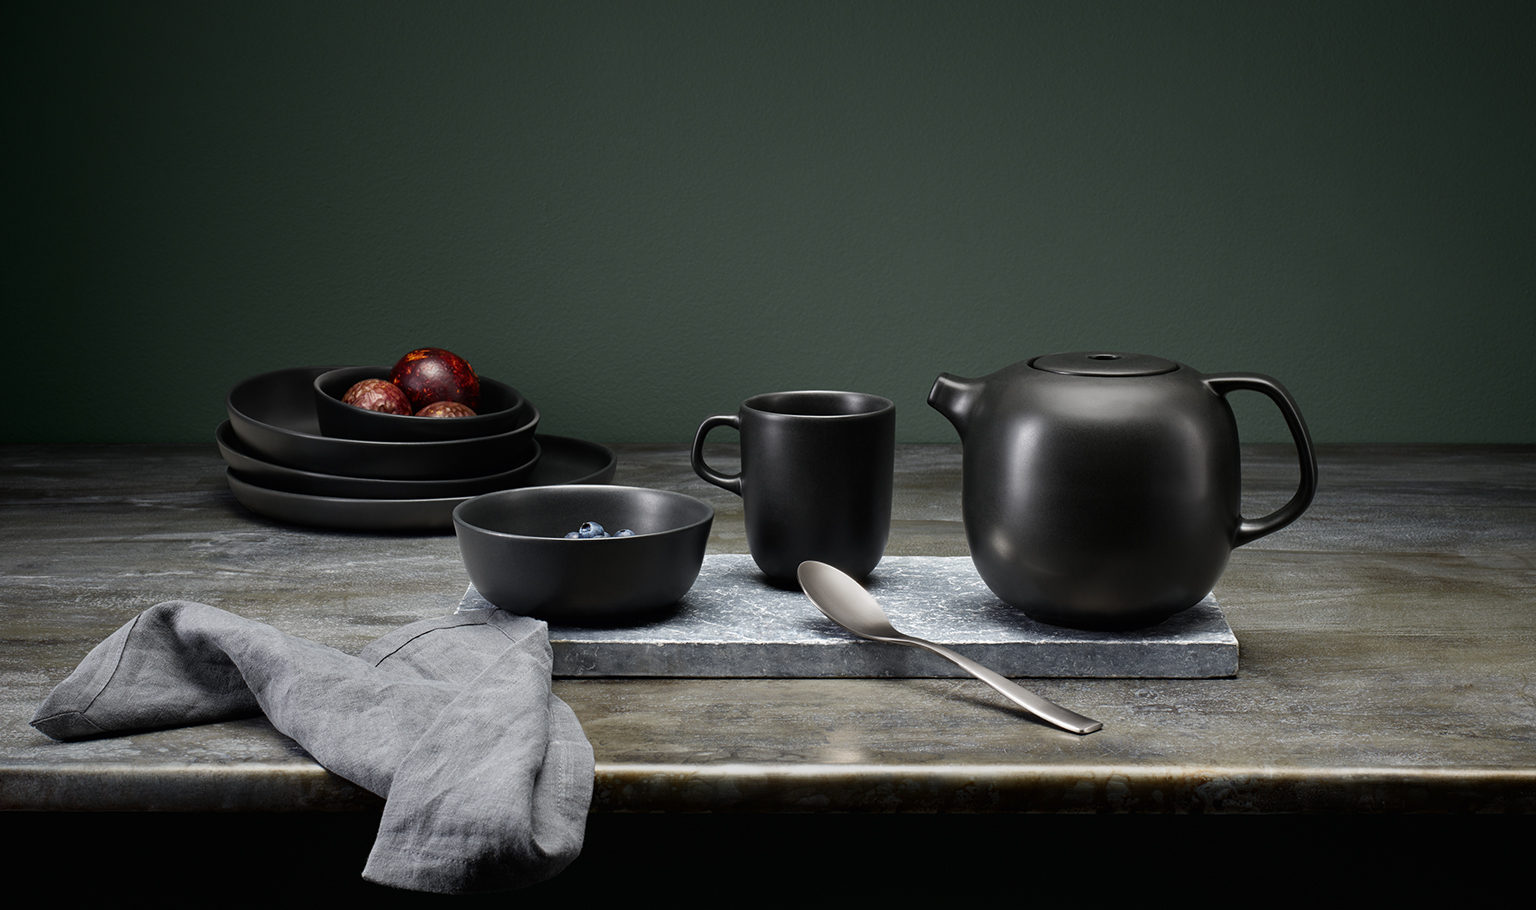 <p>This autumn sees several new products being launched in the Nordic kitchen series. Click here to see this season's new designs.&nbsp;</p>